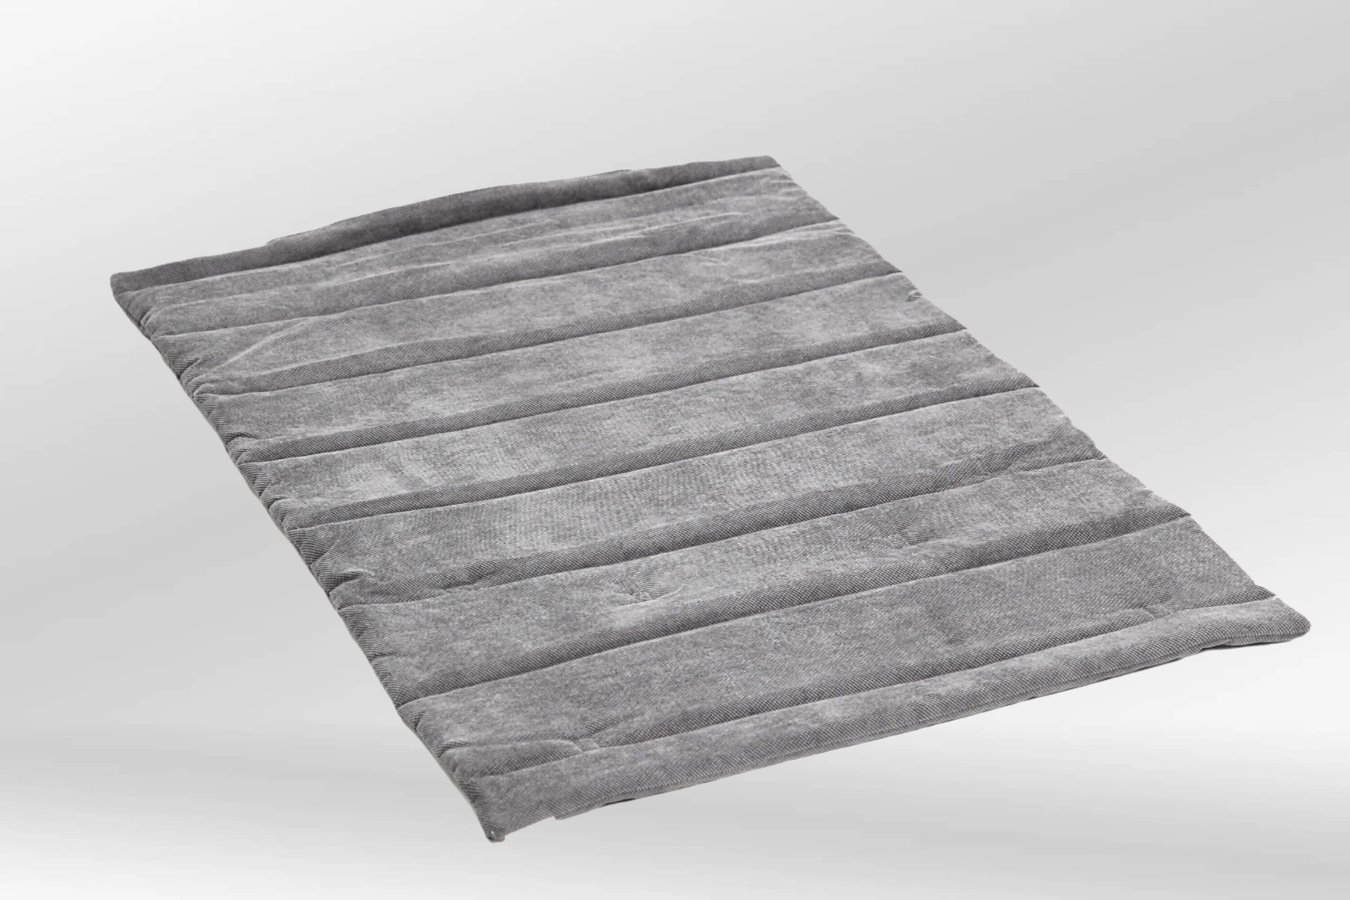 Travel Mat / Travel Bed Madison grey